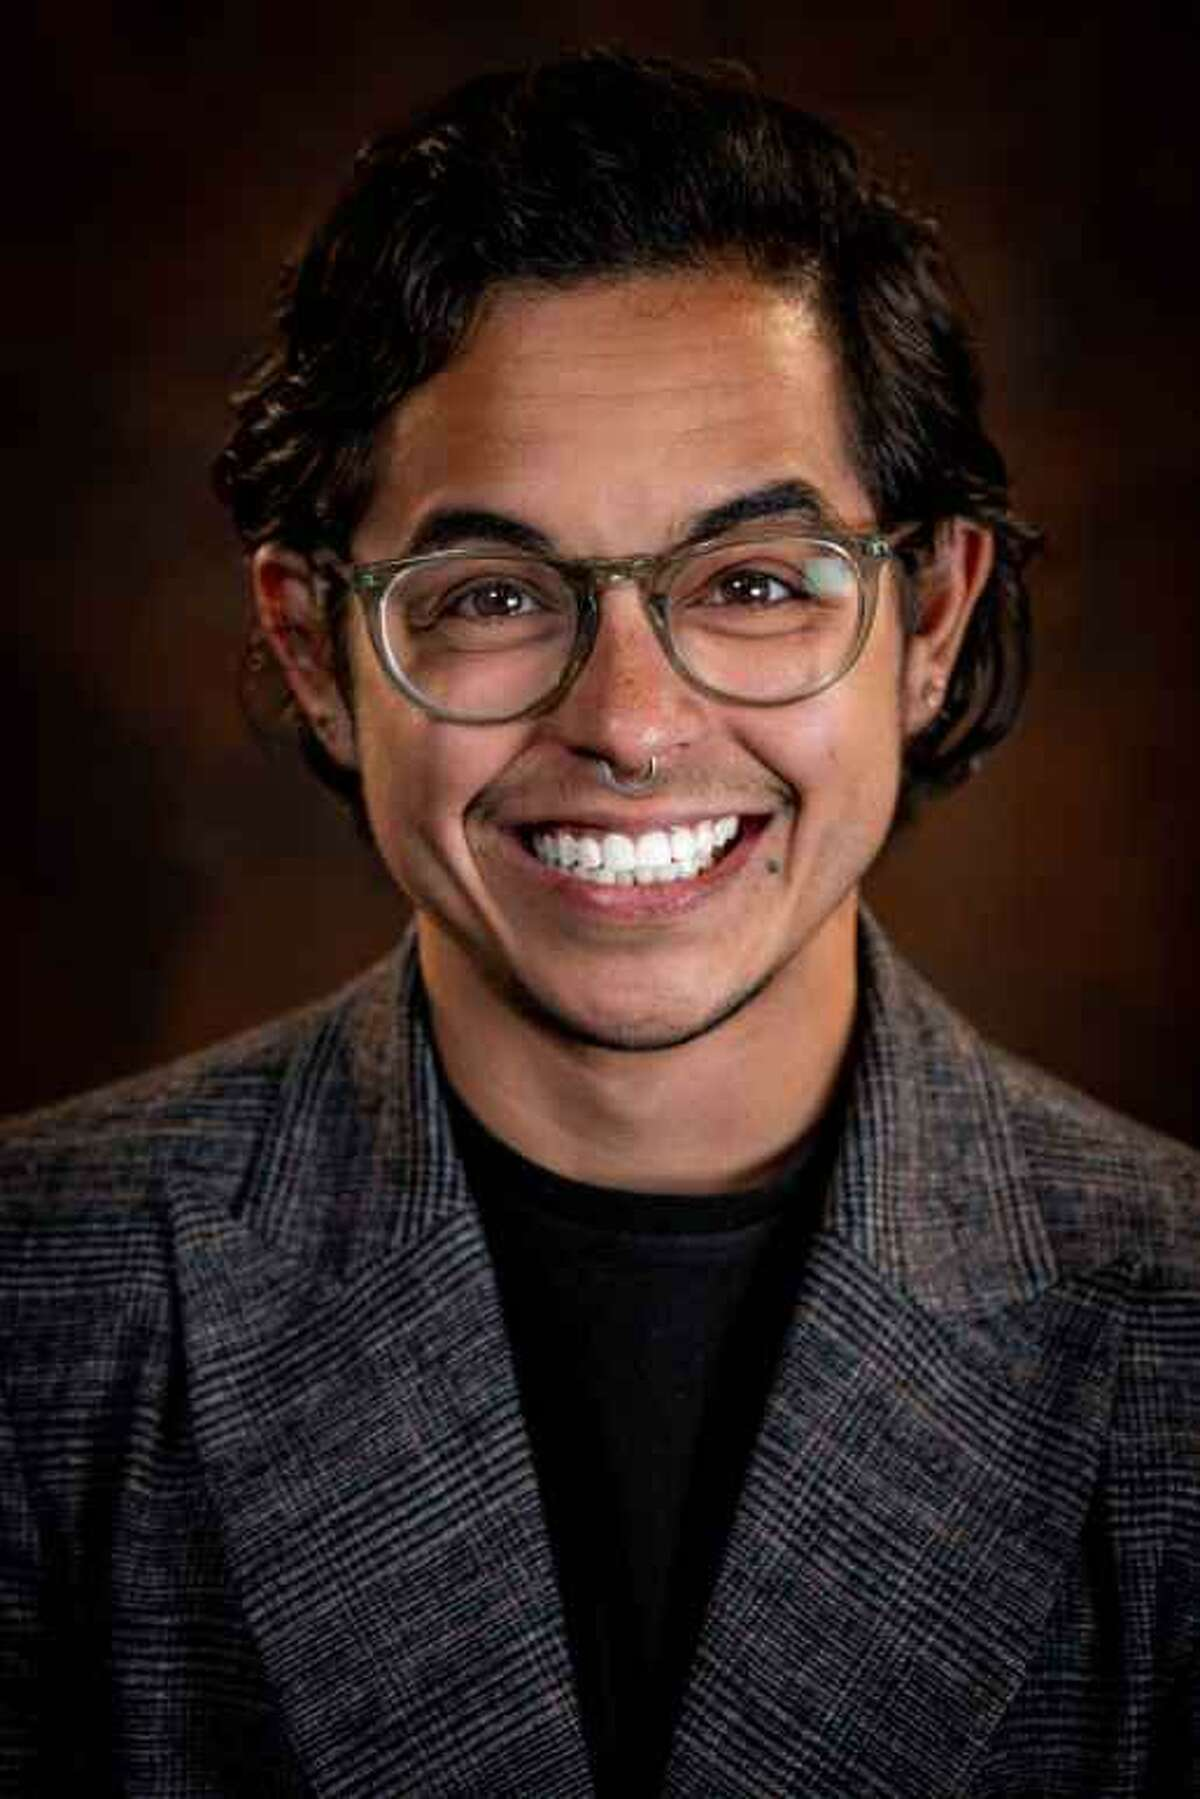 Adri Perez, a policy and advocacy strategist at ACLU of Texas who grew up in El Paso, knows what young LGBTQIA+ students endure because they lived it.